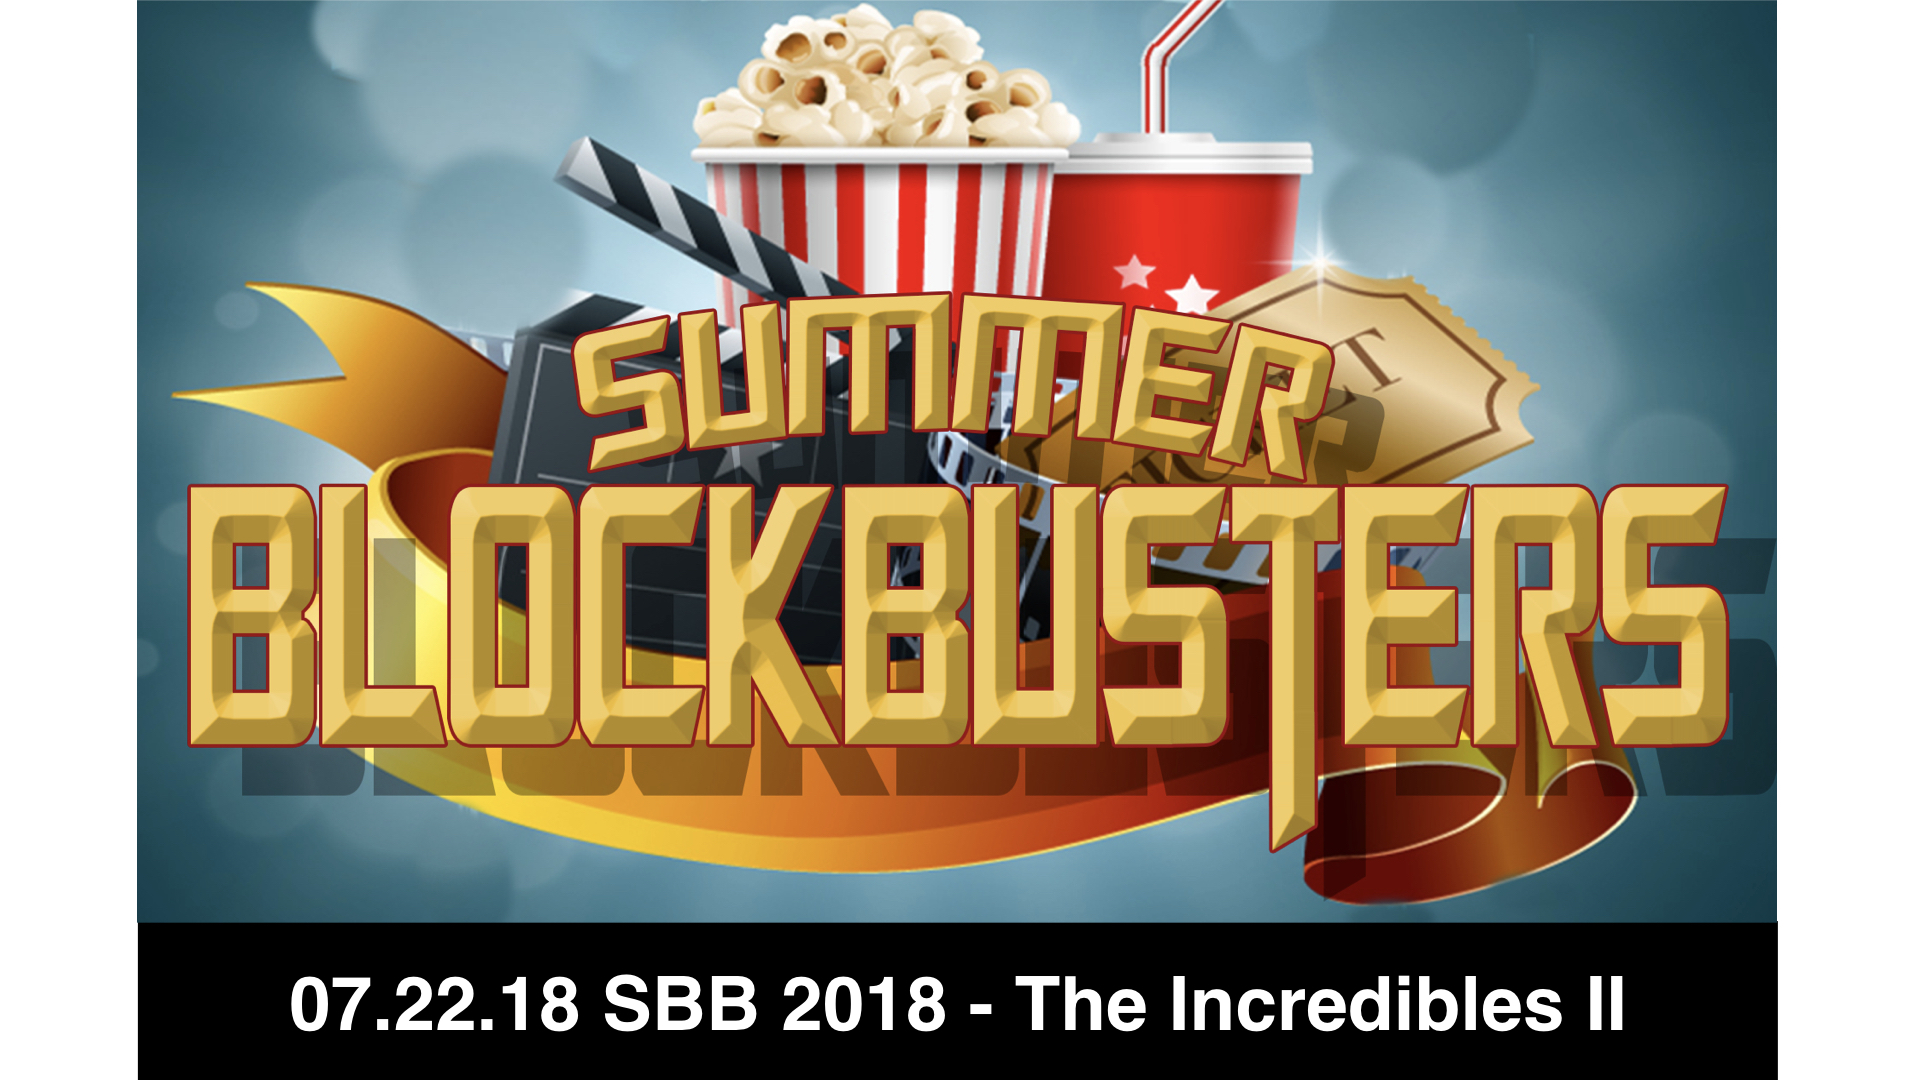 SBB 2018 - The Incredibles II